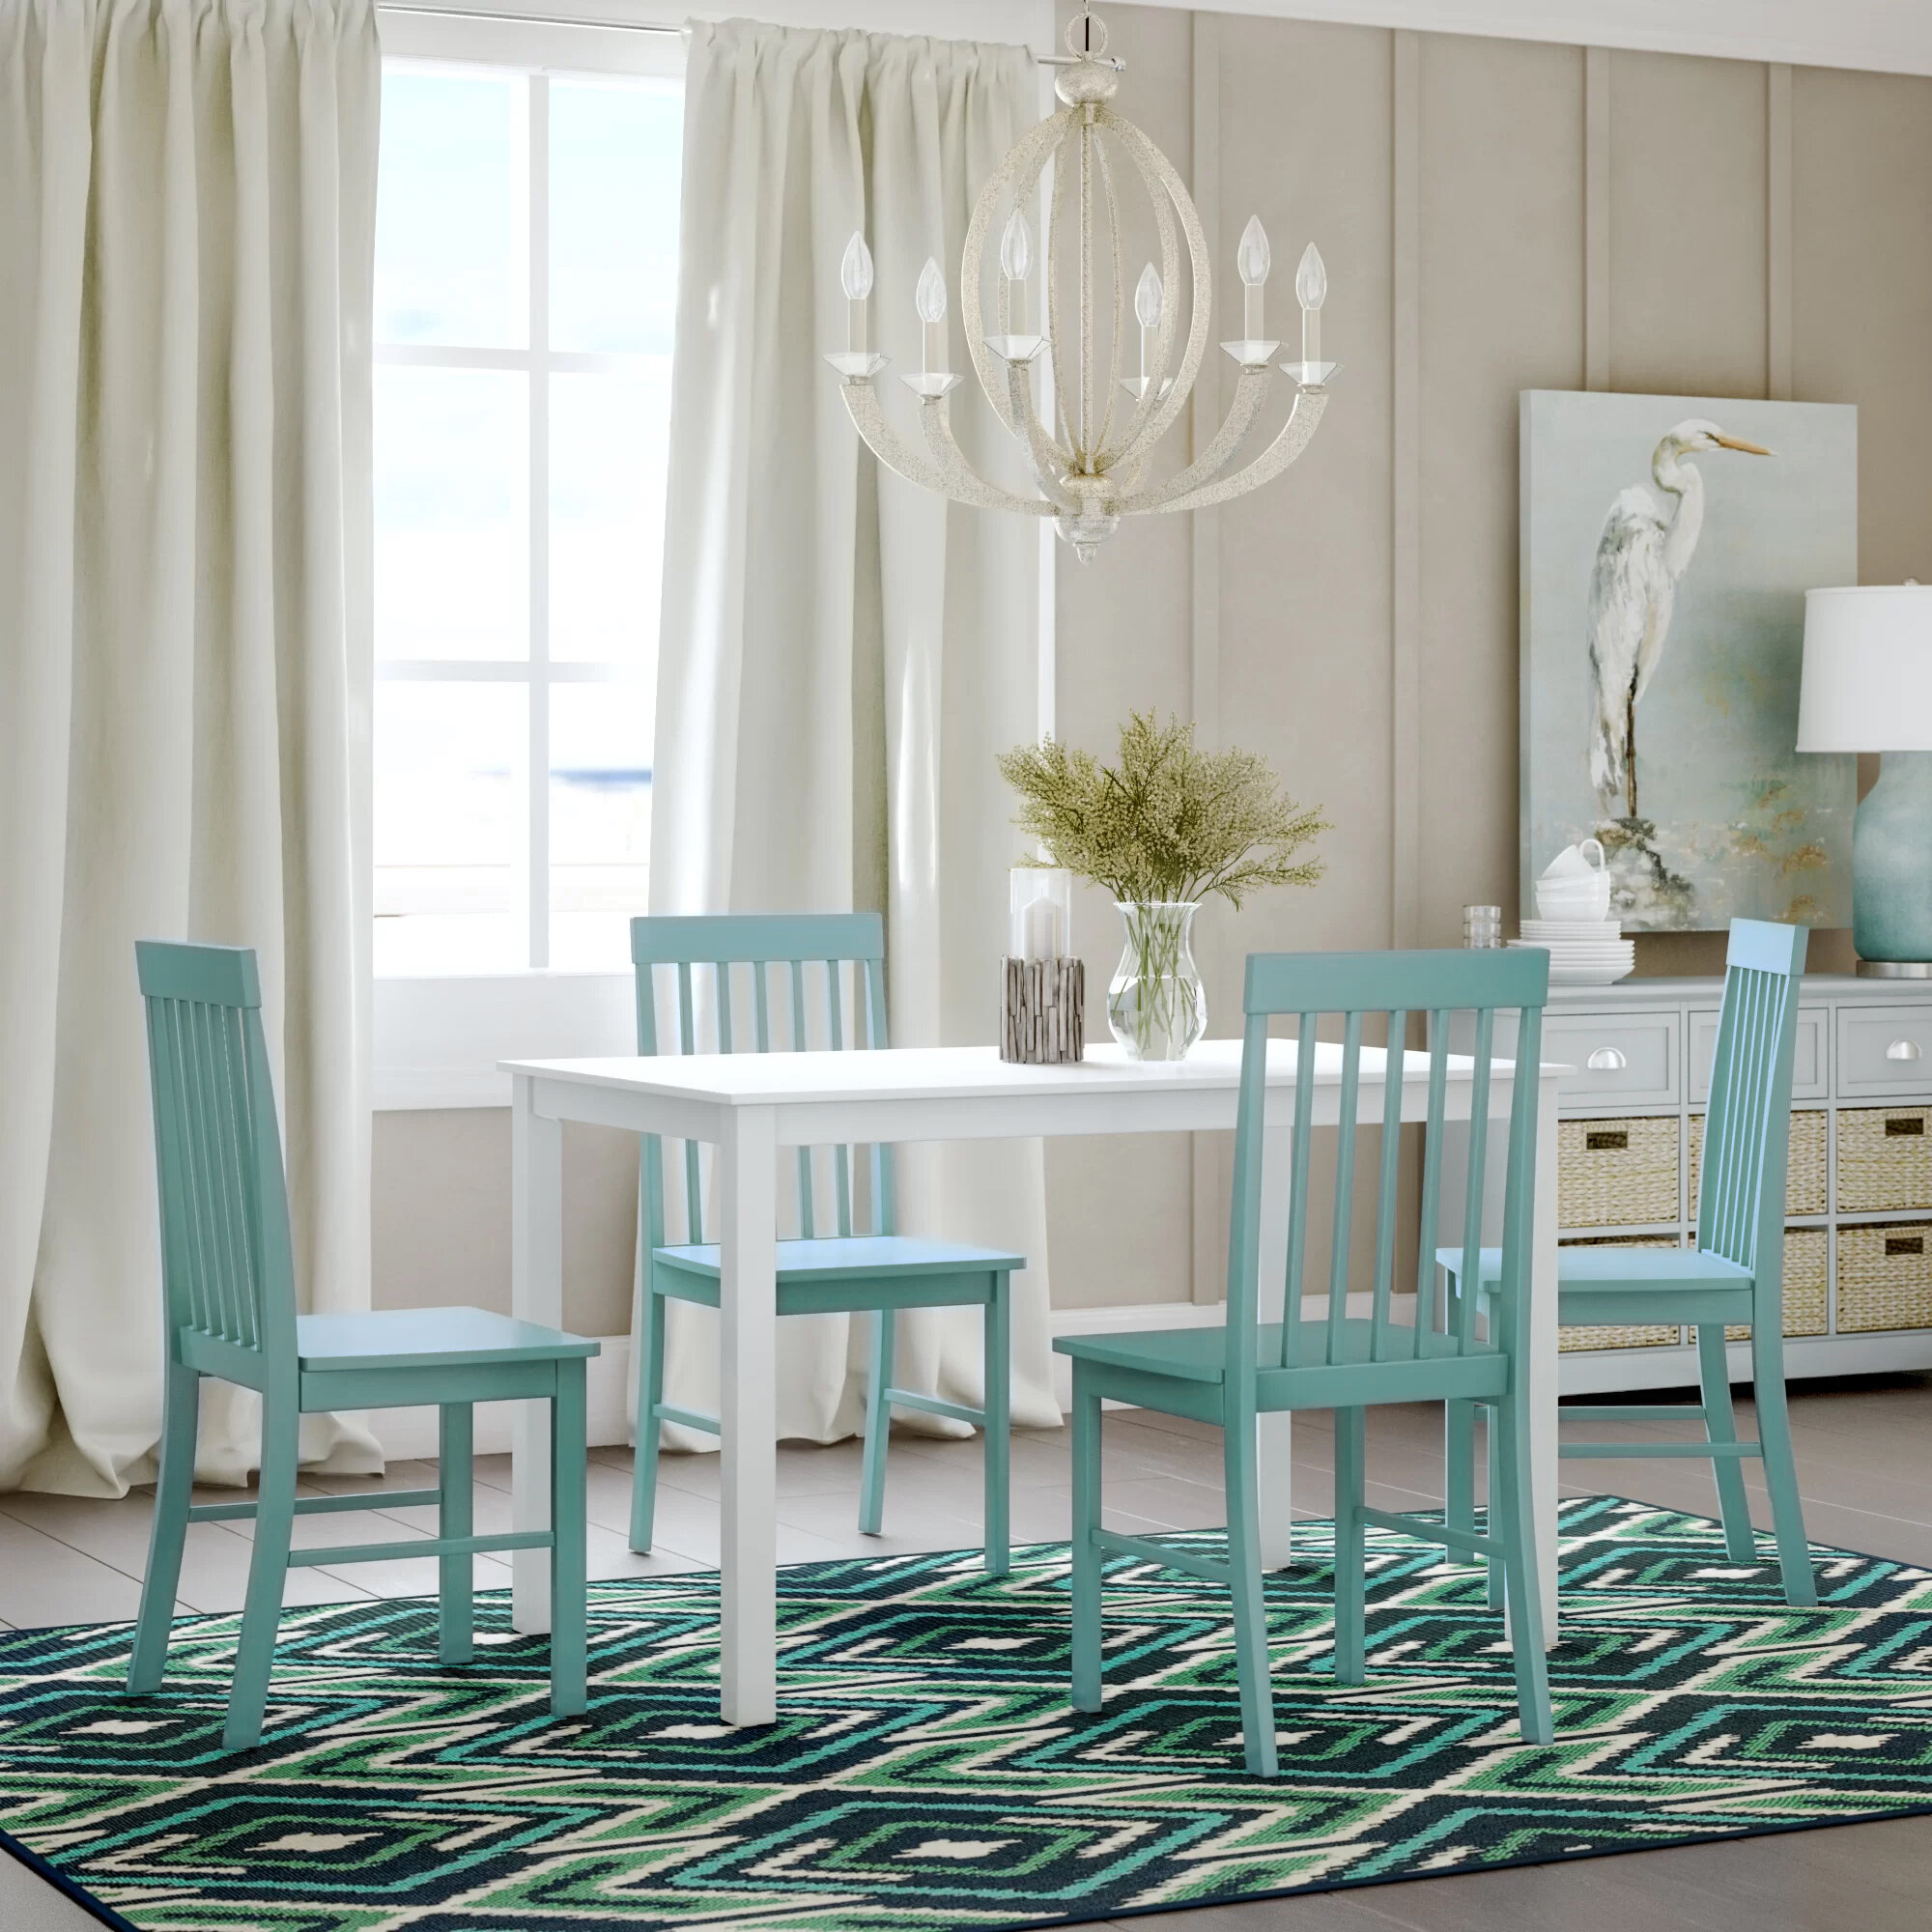 Kitchen & Dining Room Sets You'll Love in 2021